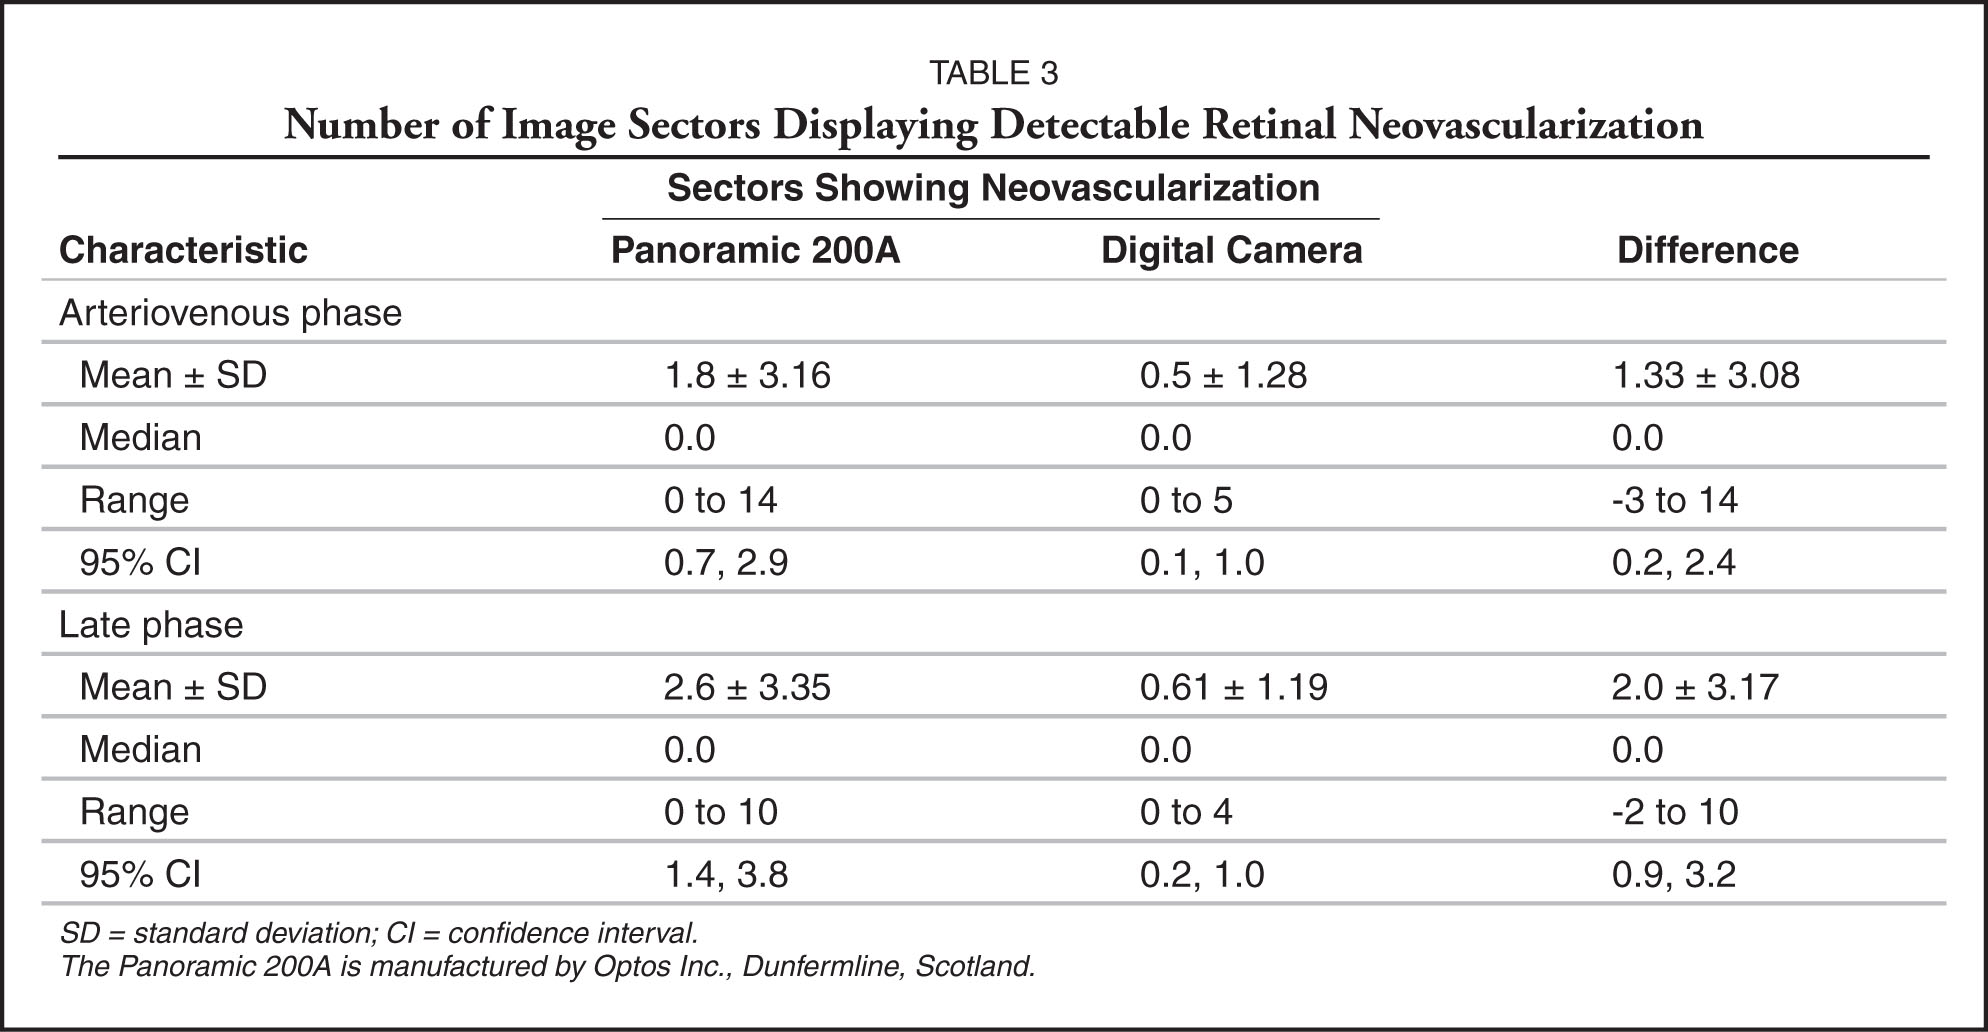 Number of Image Sectors Displaying Detectable Retinal Neovascularization